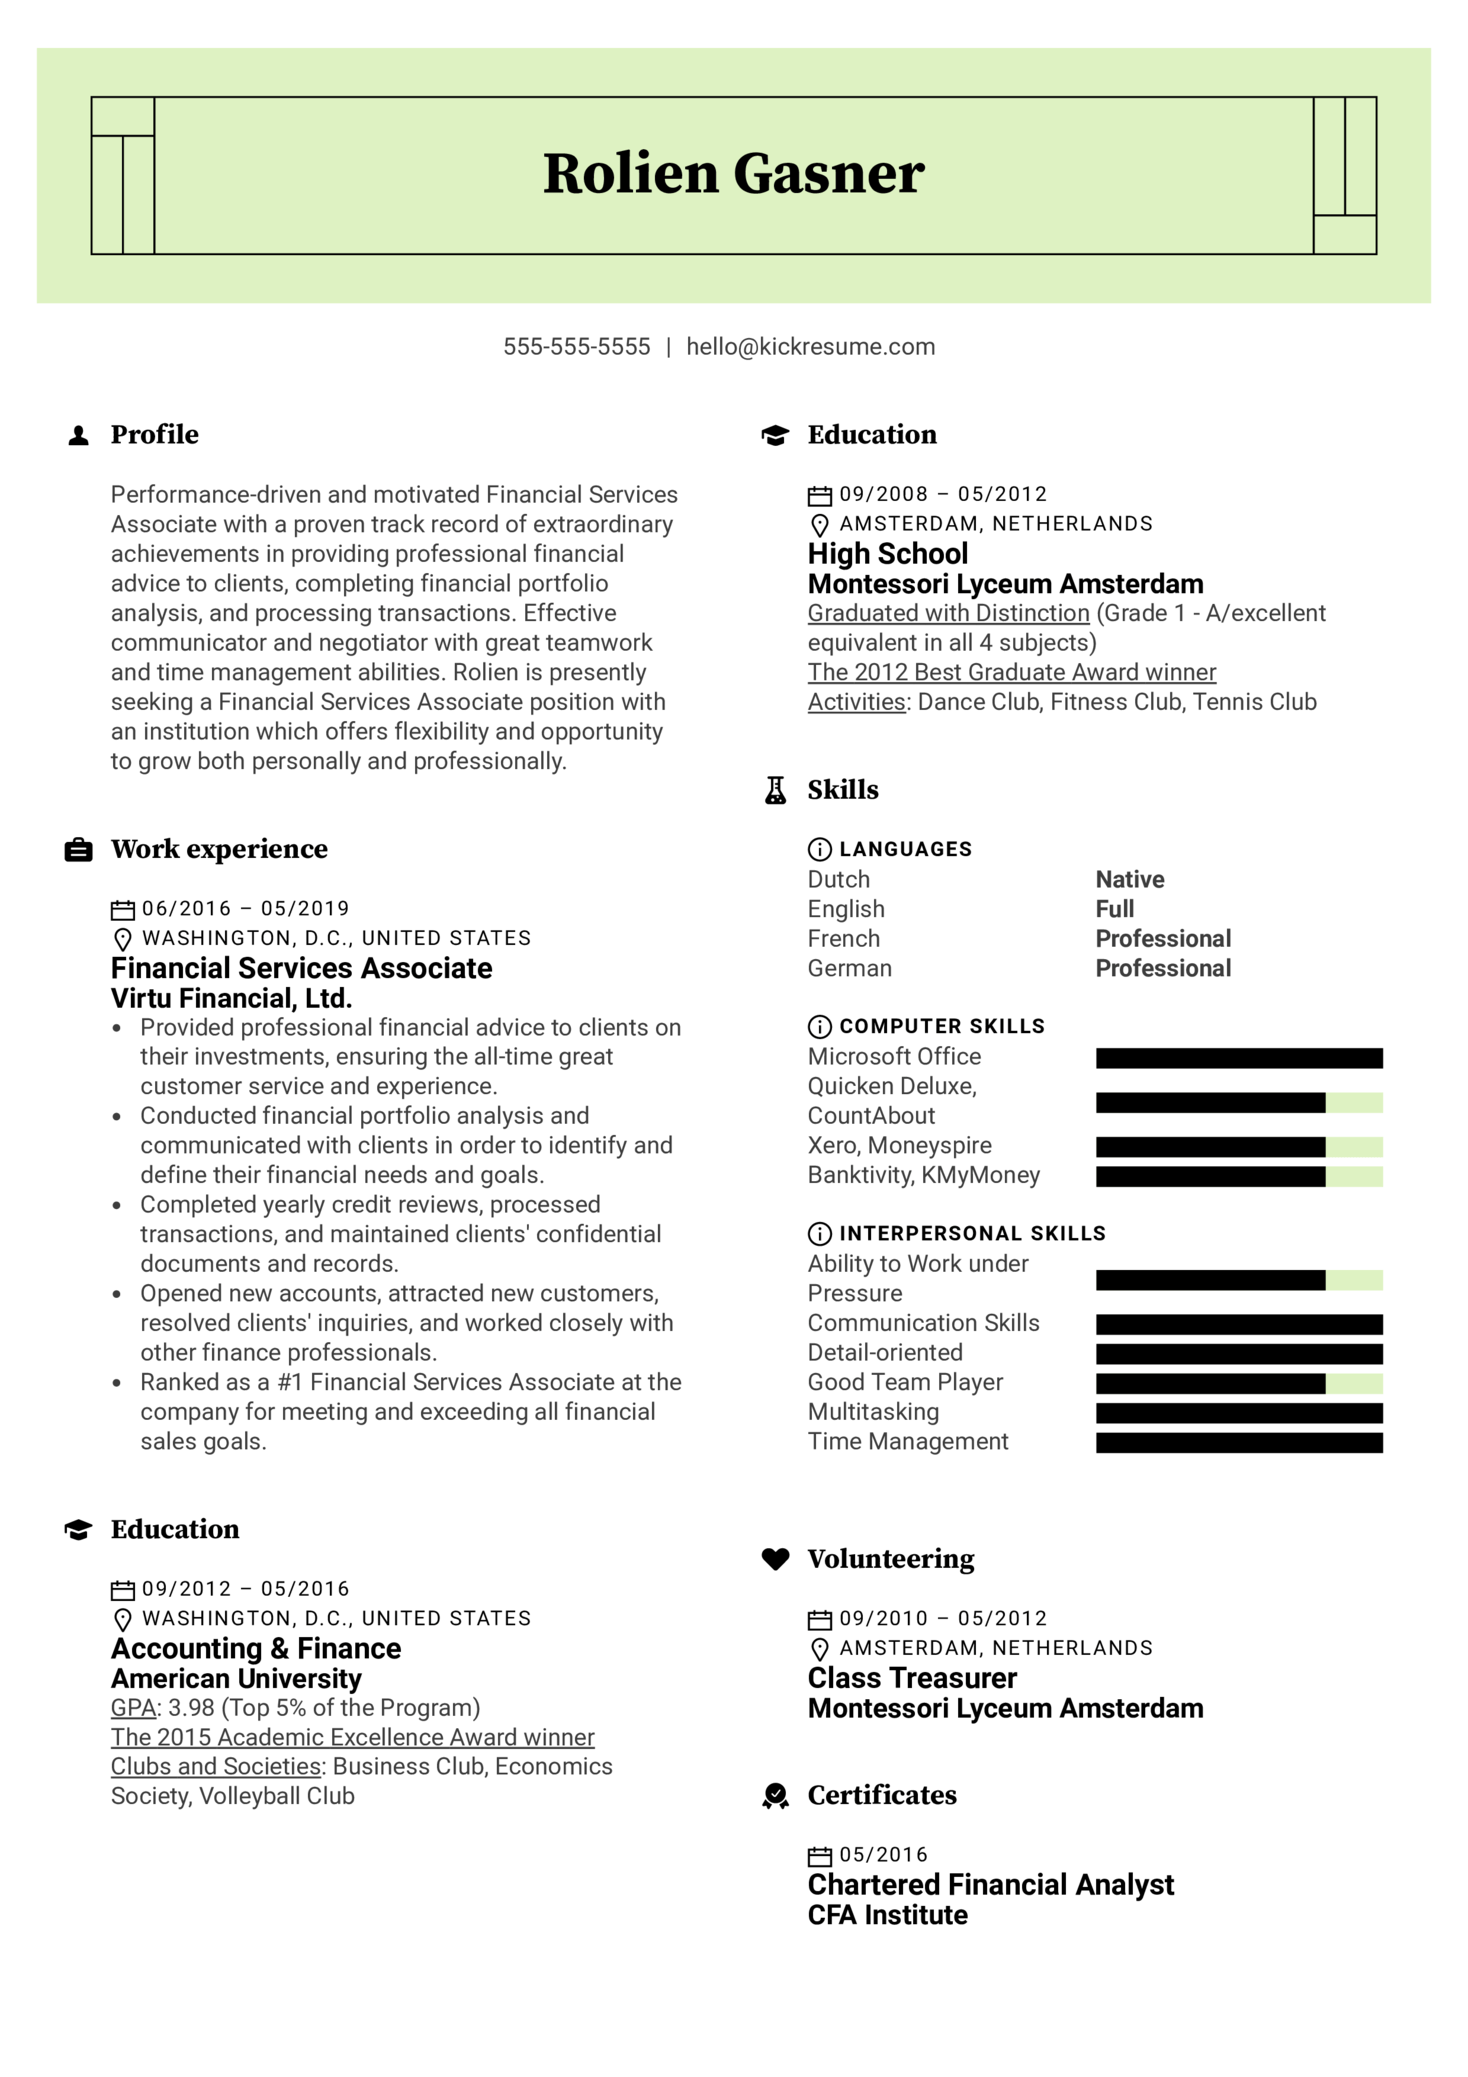 Financial Services Associate Resume Example (parte 1)